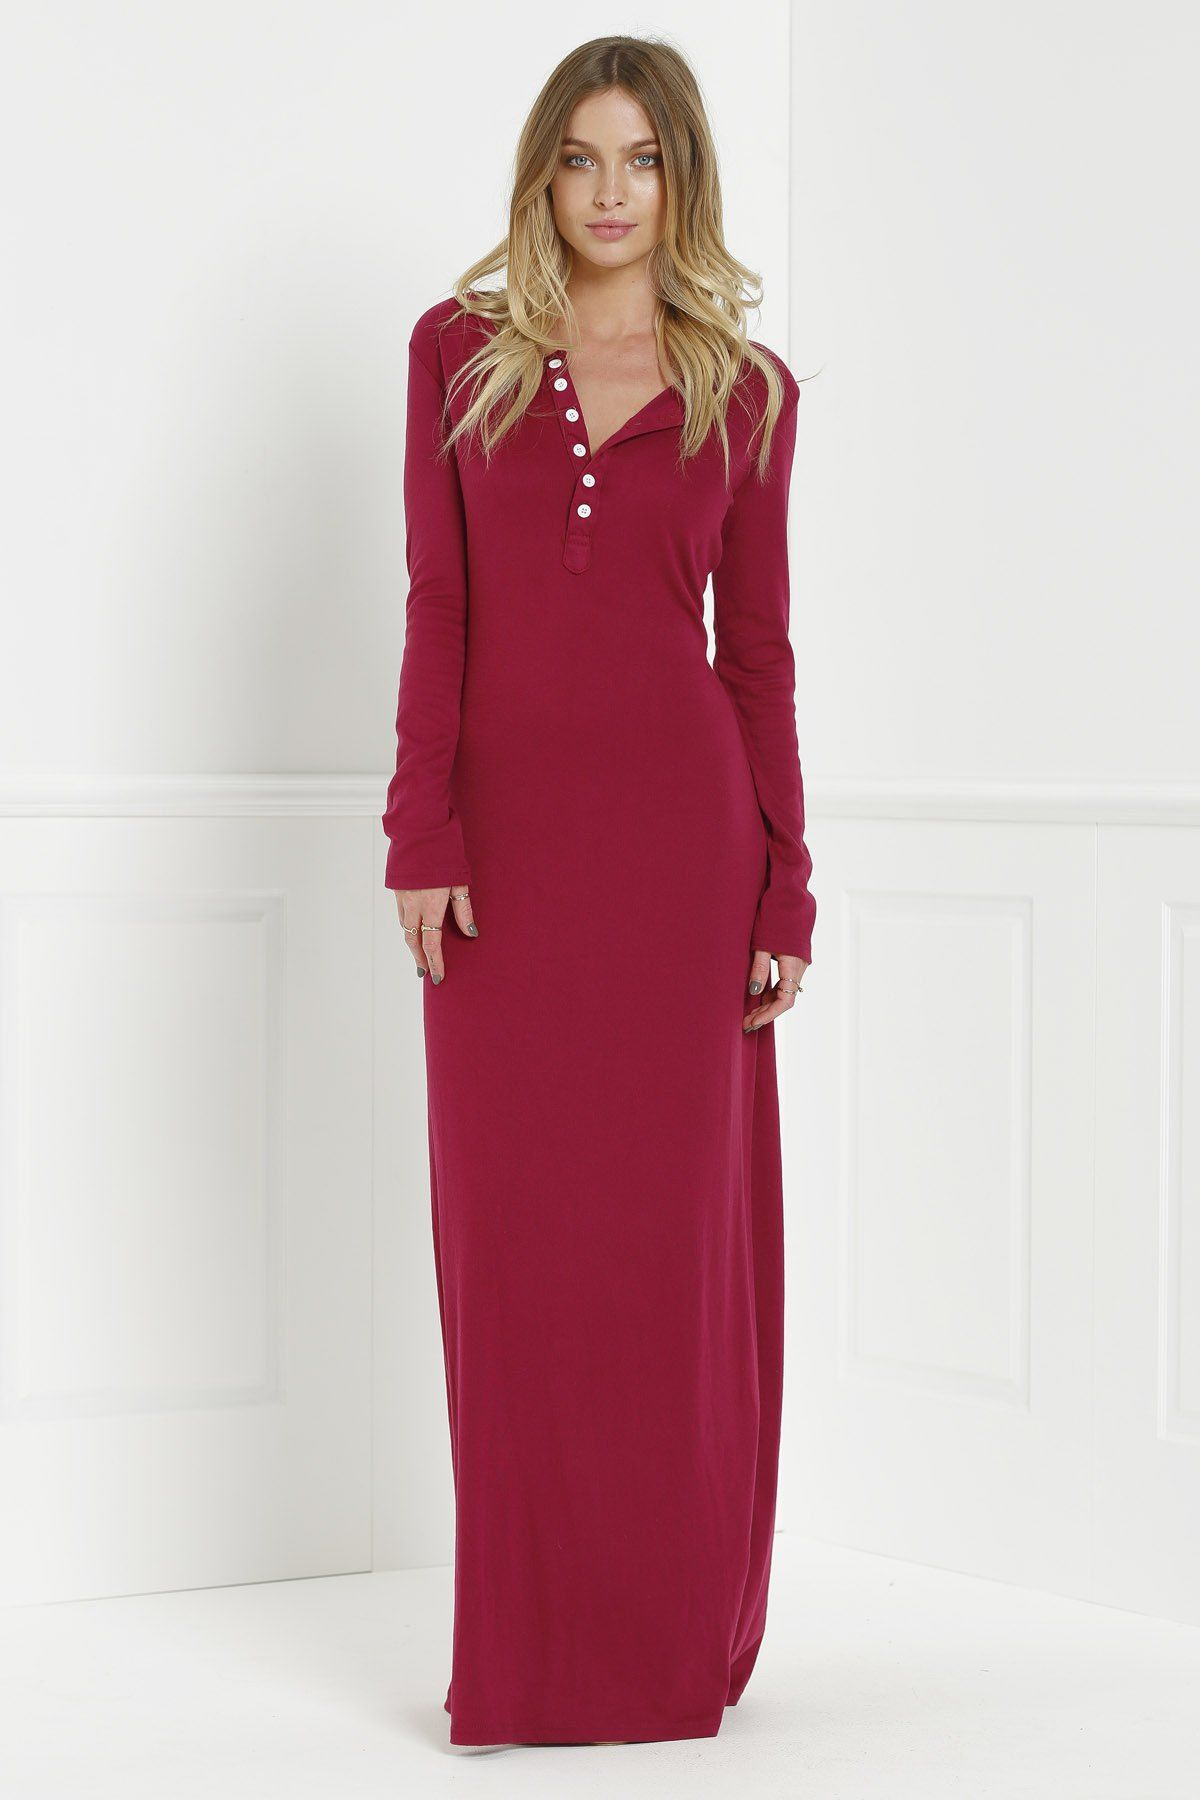 El topo dress wine red maxi dresses zaful dresses pinterest